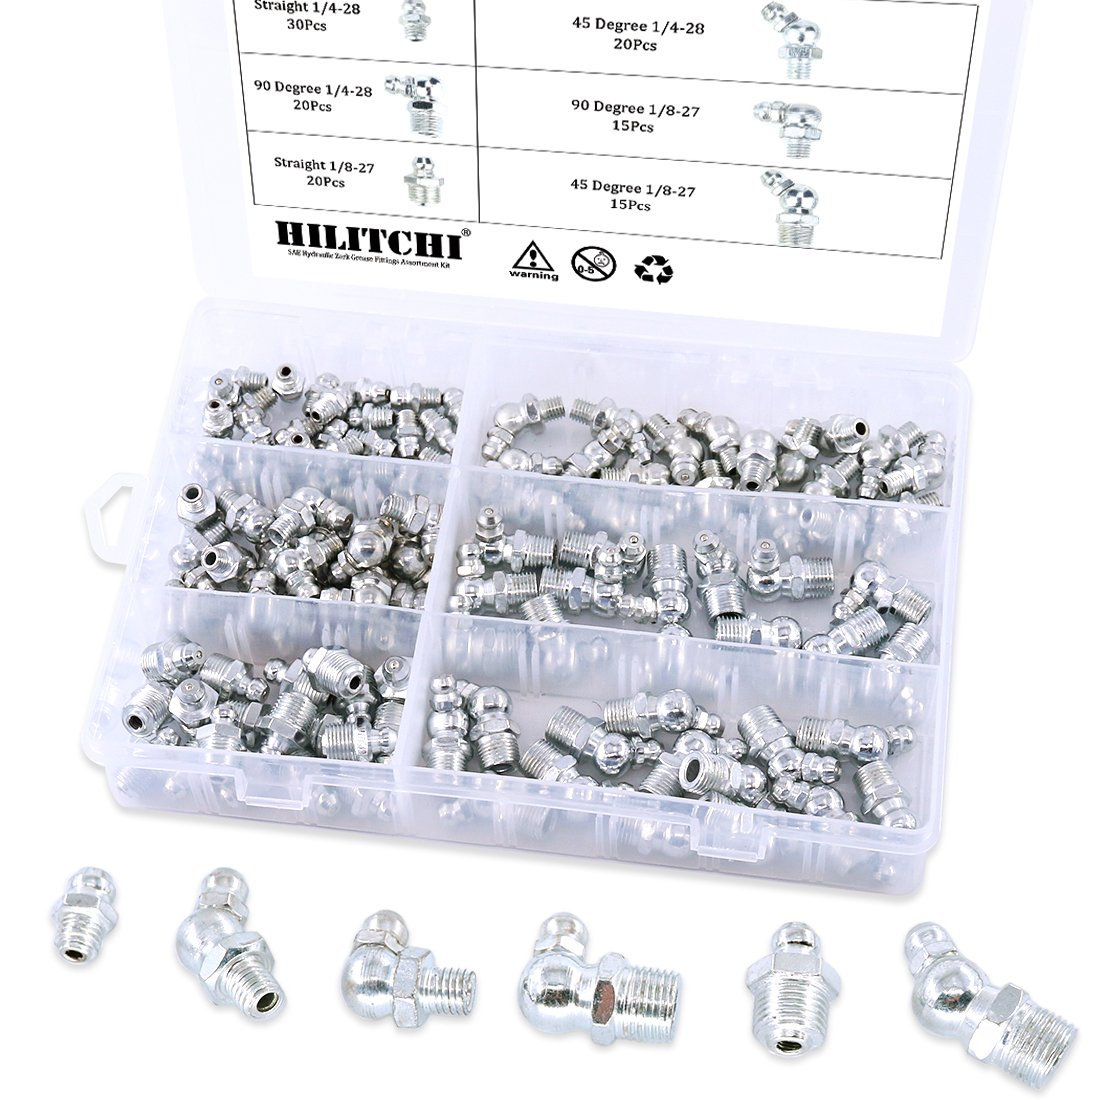 Hilitchi 120pcs SAE Hydraulic Zerk Grease Fittings Assortment Kit